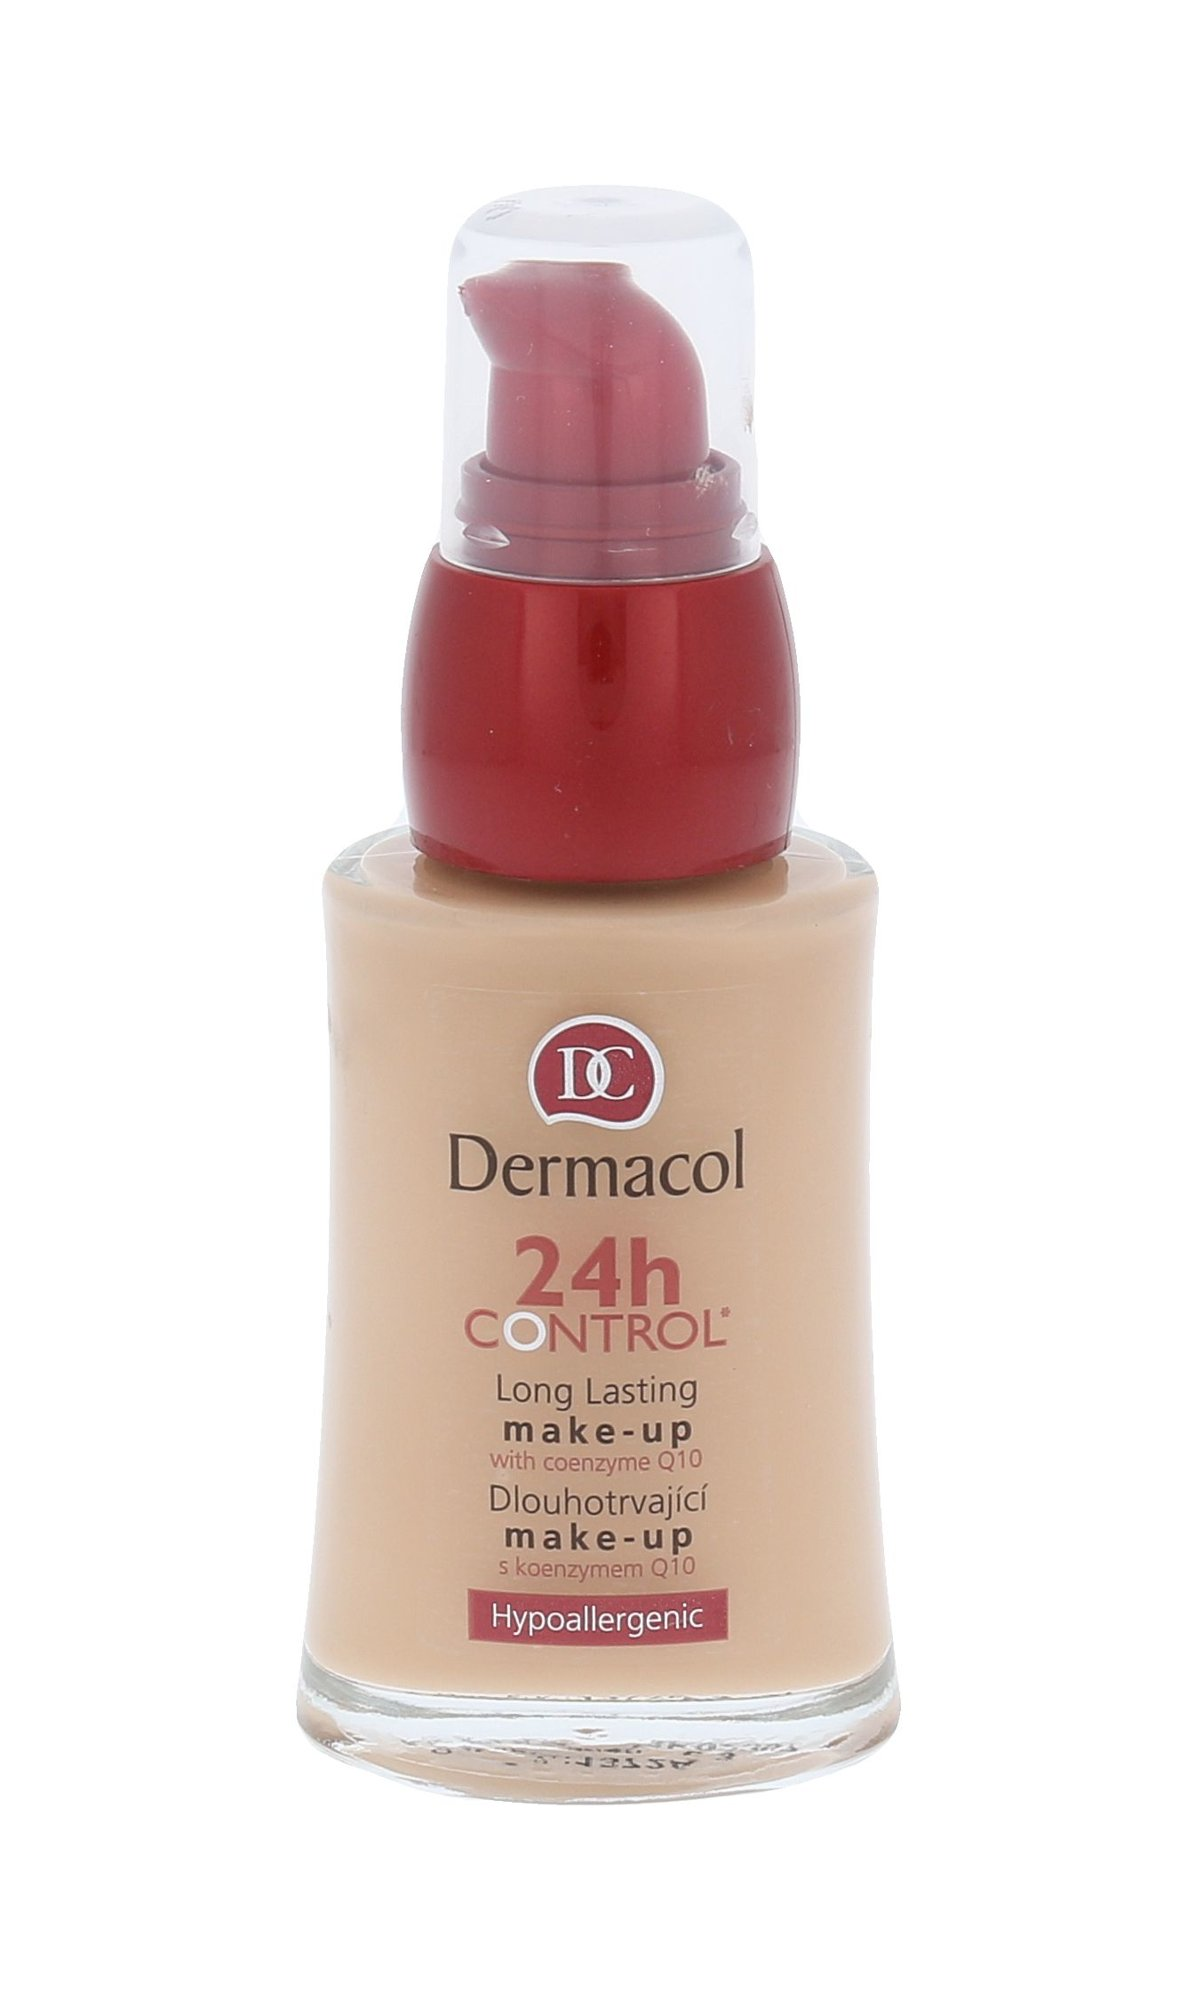 Dermacol 24h Control Makeup 30ml 3